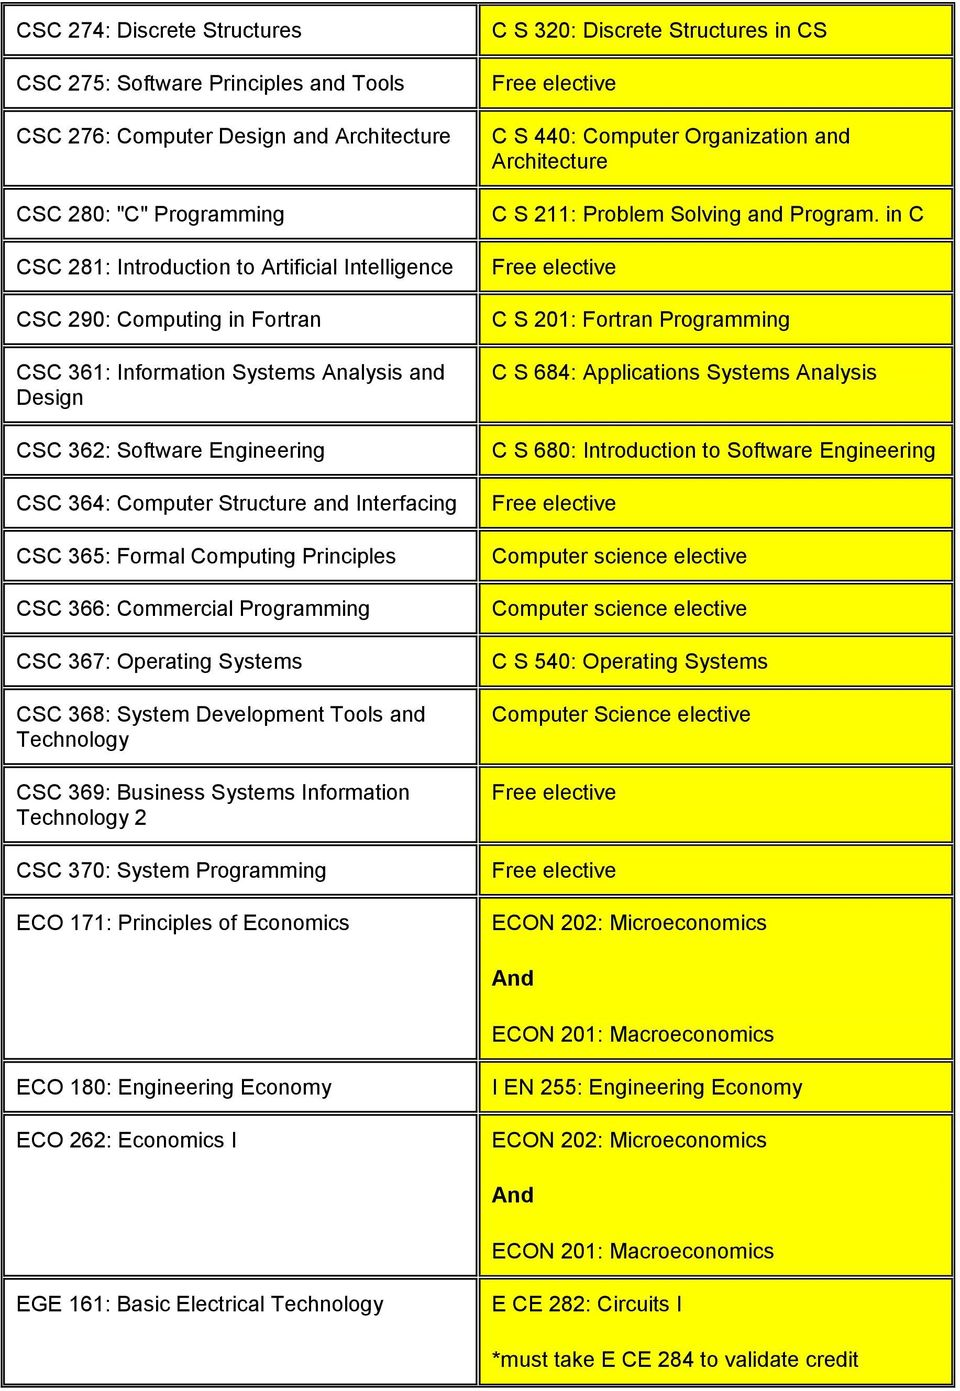 Programming CSC 367: Operating Systems CSC 368: System Development Tools and Technology CSC 369: Business Systems Information Technology 2 CSC 370: System Programming ECO 171: Principles of Economics